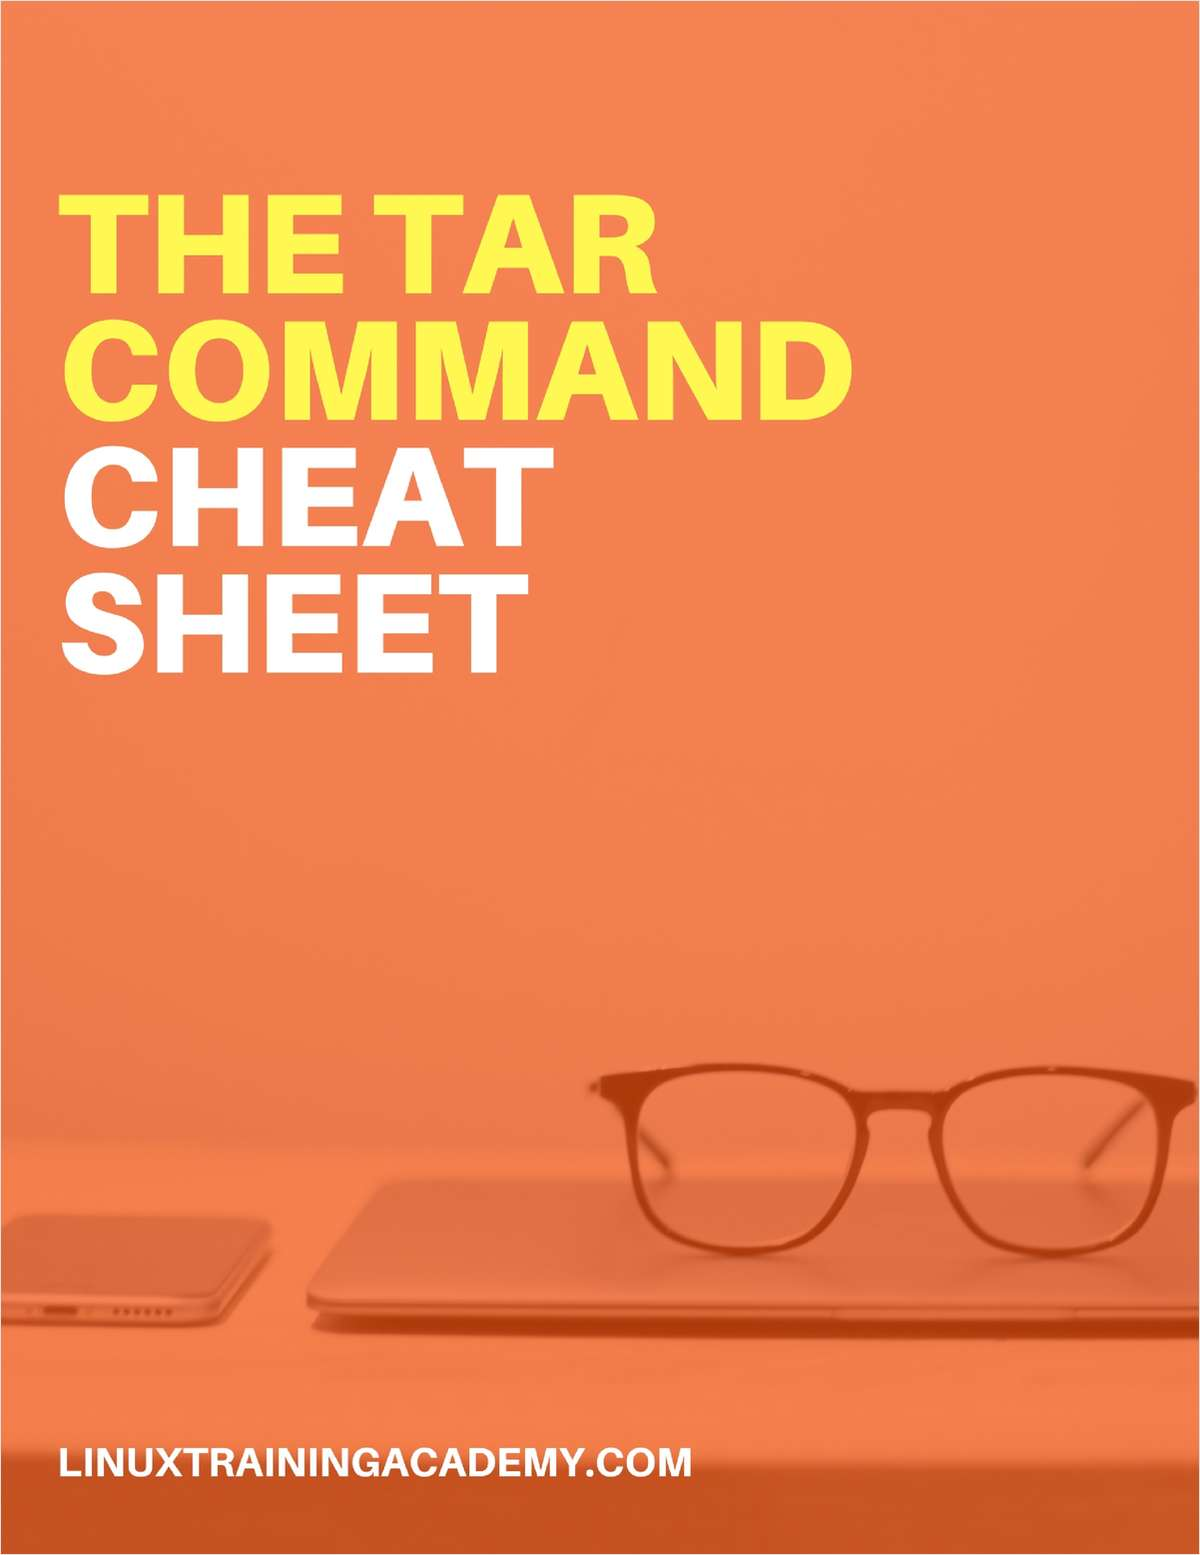 The Tar Command Cheat Sheet